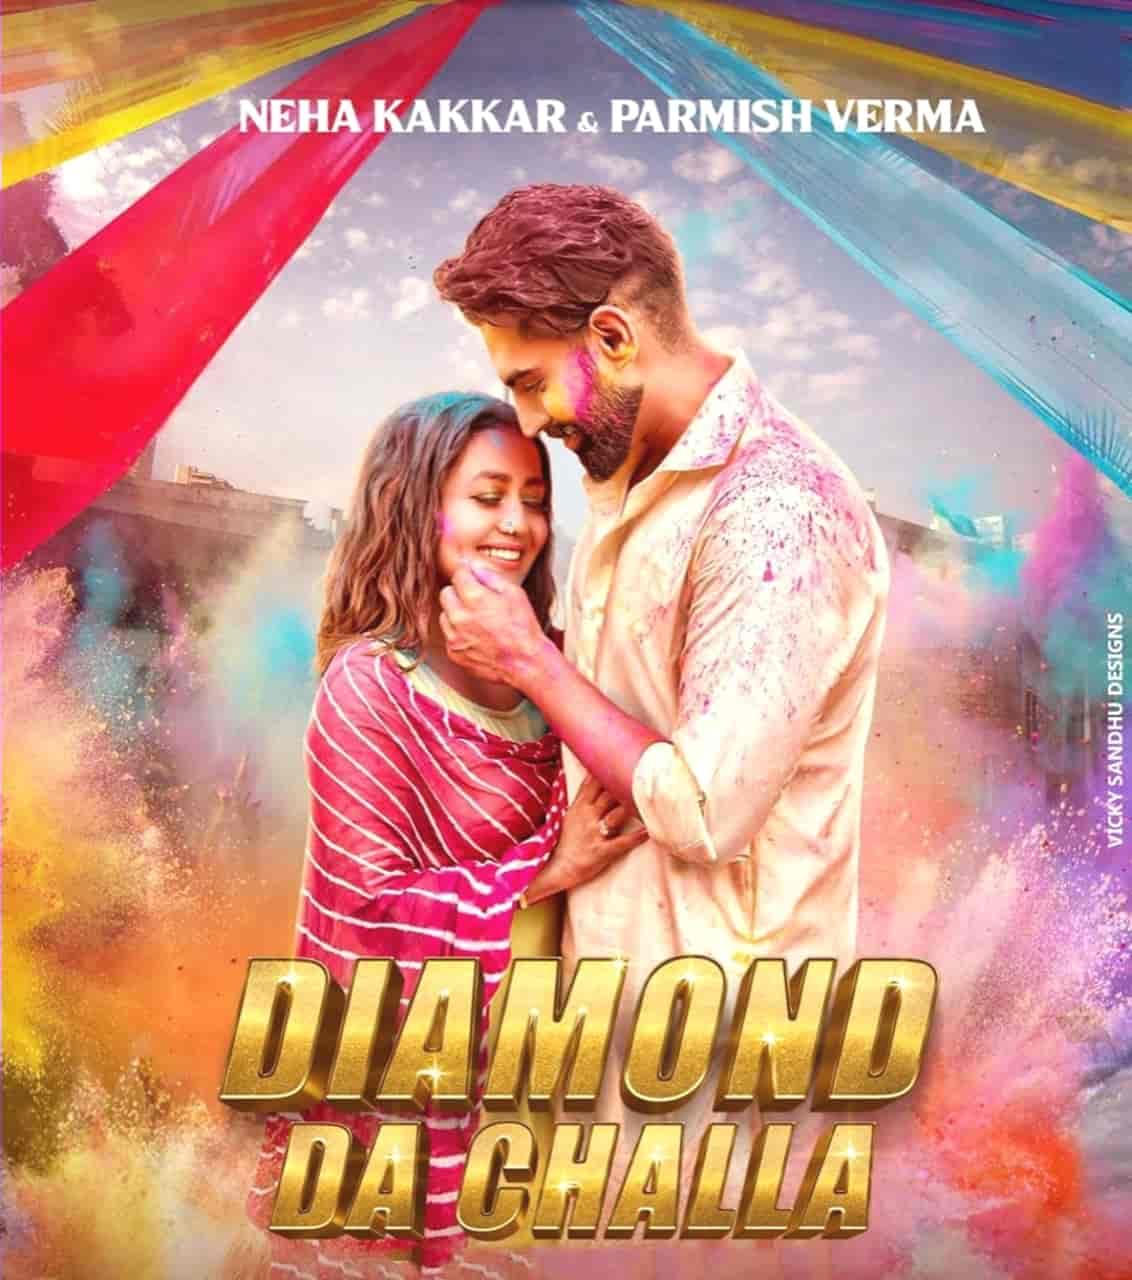 Diamond Da Challa Punjabi Song Image Features Neha Kakkar and Parmish Verma